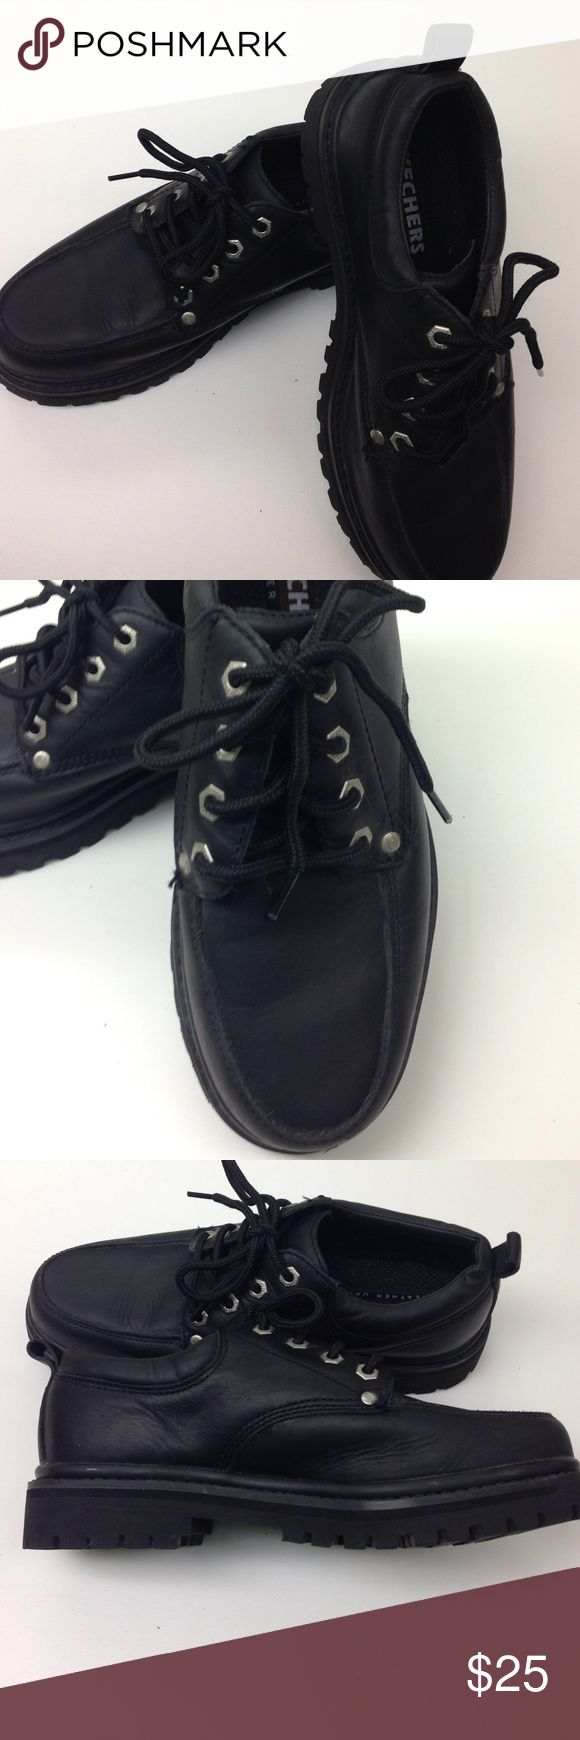 Skechers Leather Upper Black Shoes Skechers black leather upper shoes. These shoes similar to a boot and are heavy like a boot. Lace ups. Size 7.5 Worn once! In excellent condition. Skechers Shoes